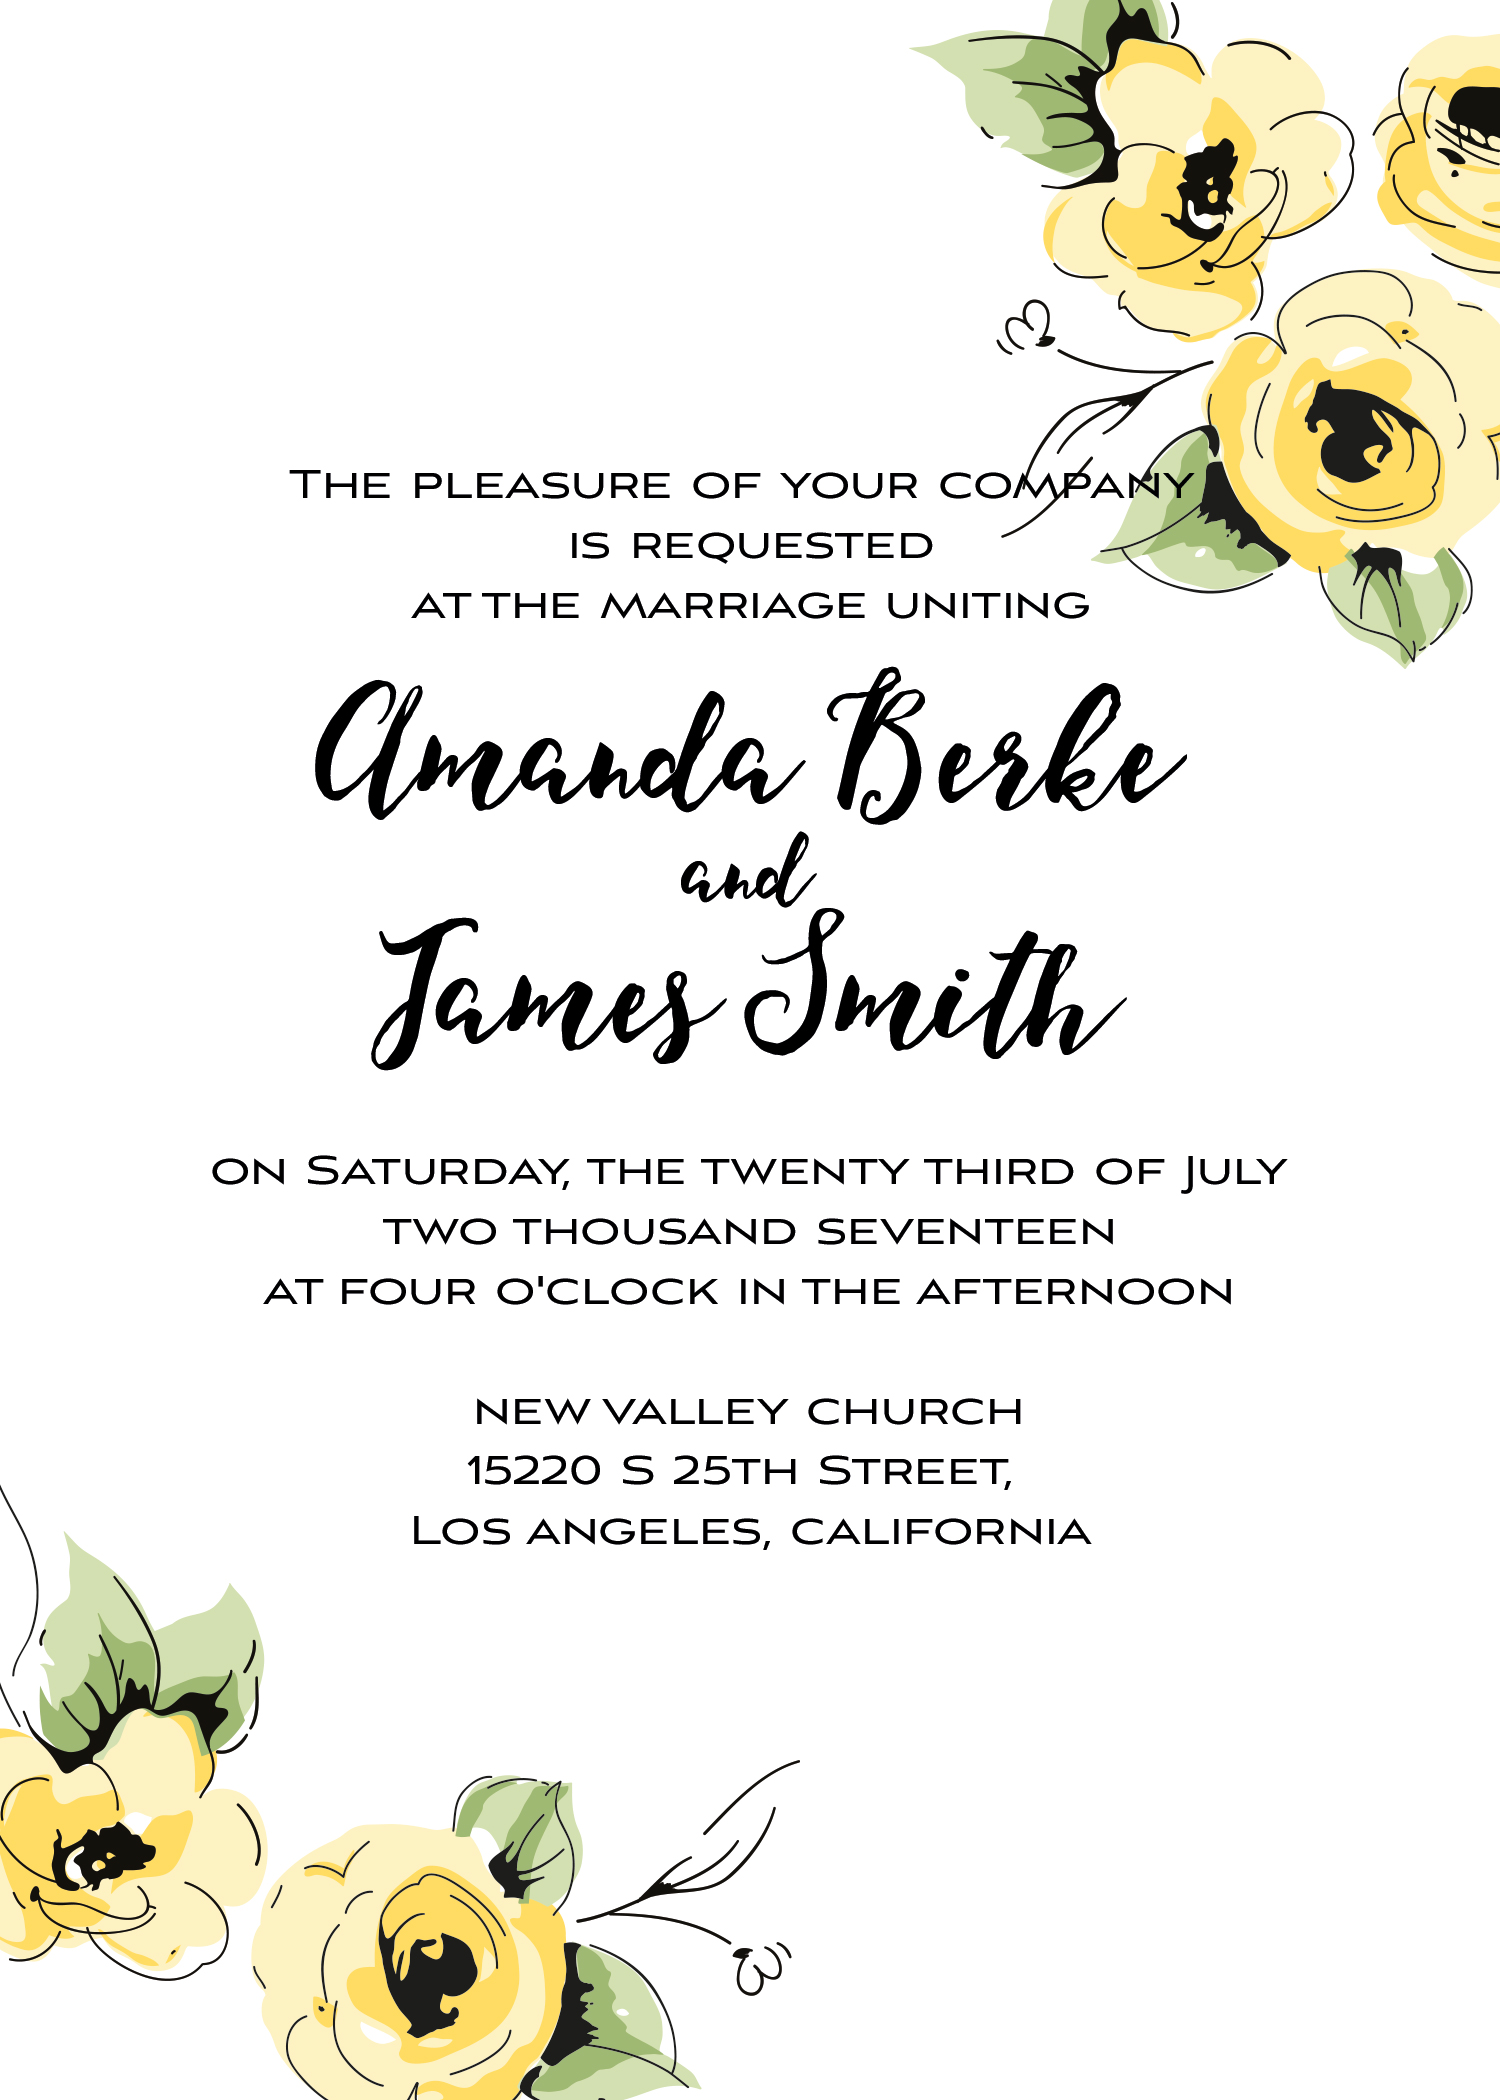 Wedding kit invitation template  1